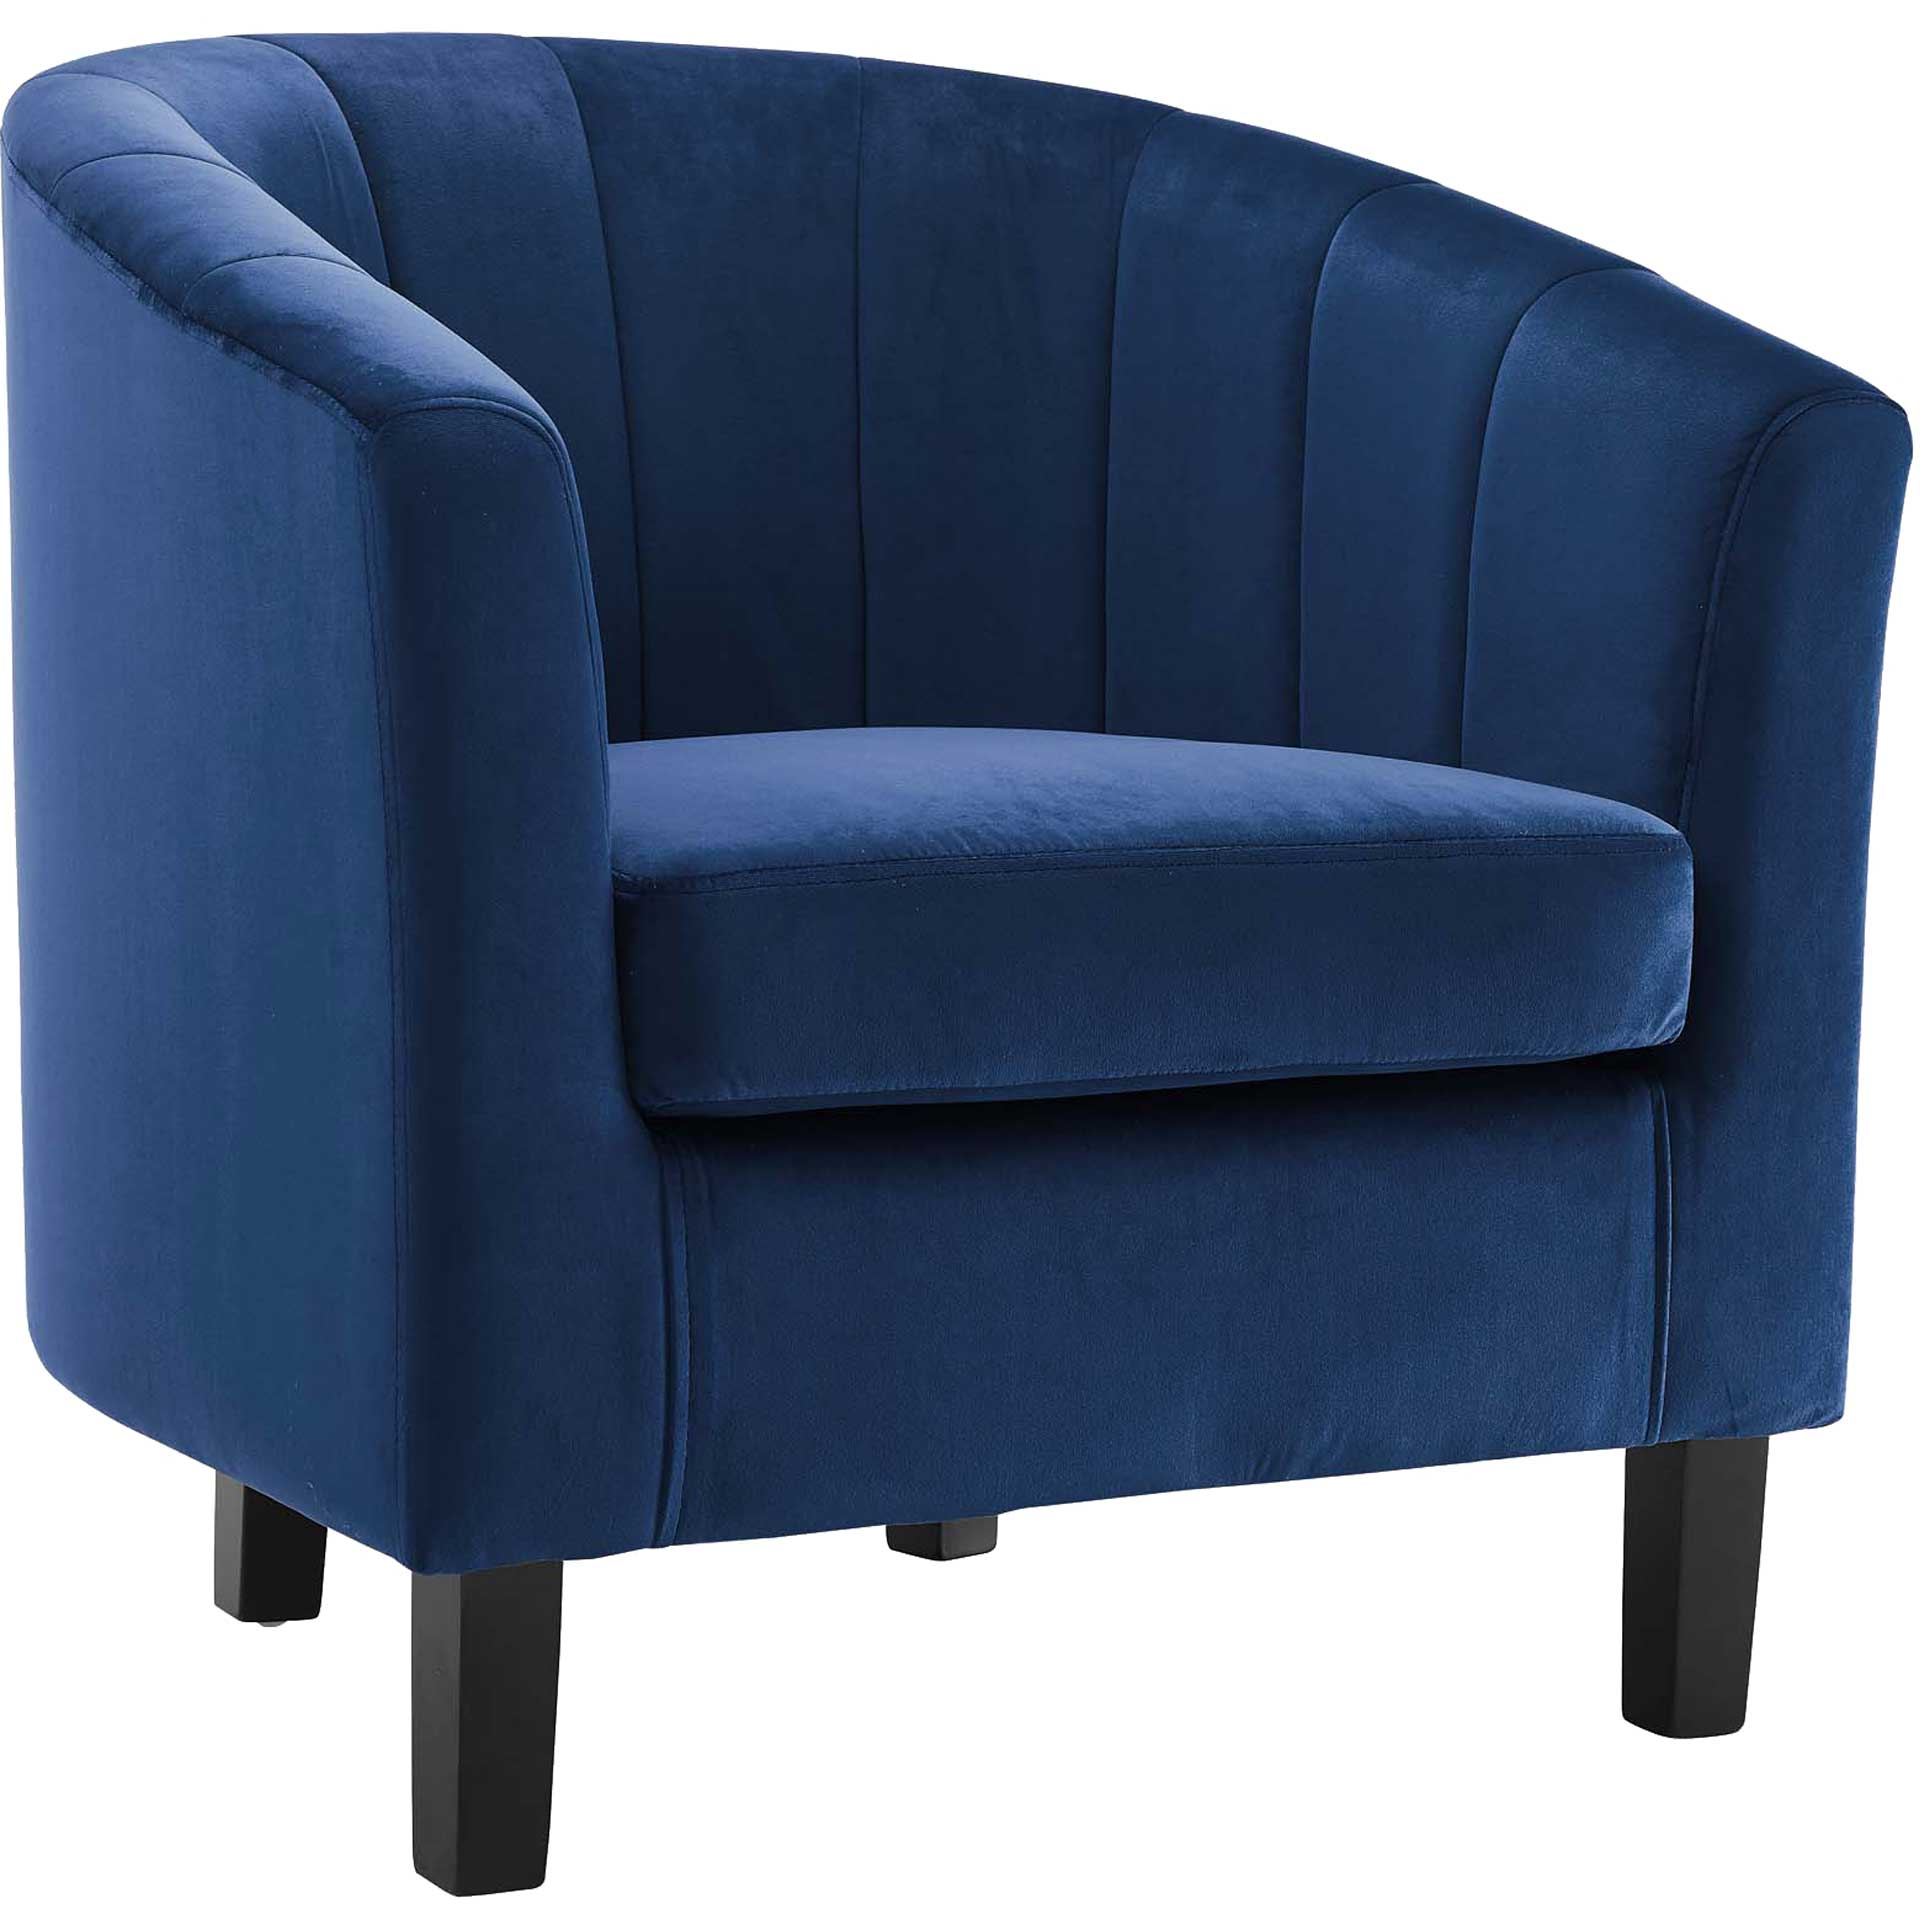 Paloma Channel Tufted Velvet Armchair Navy